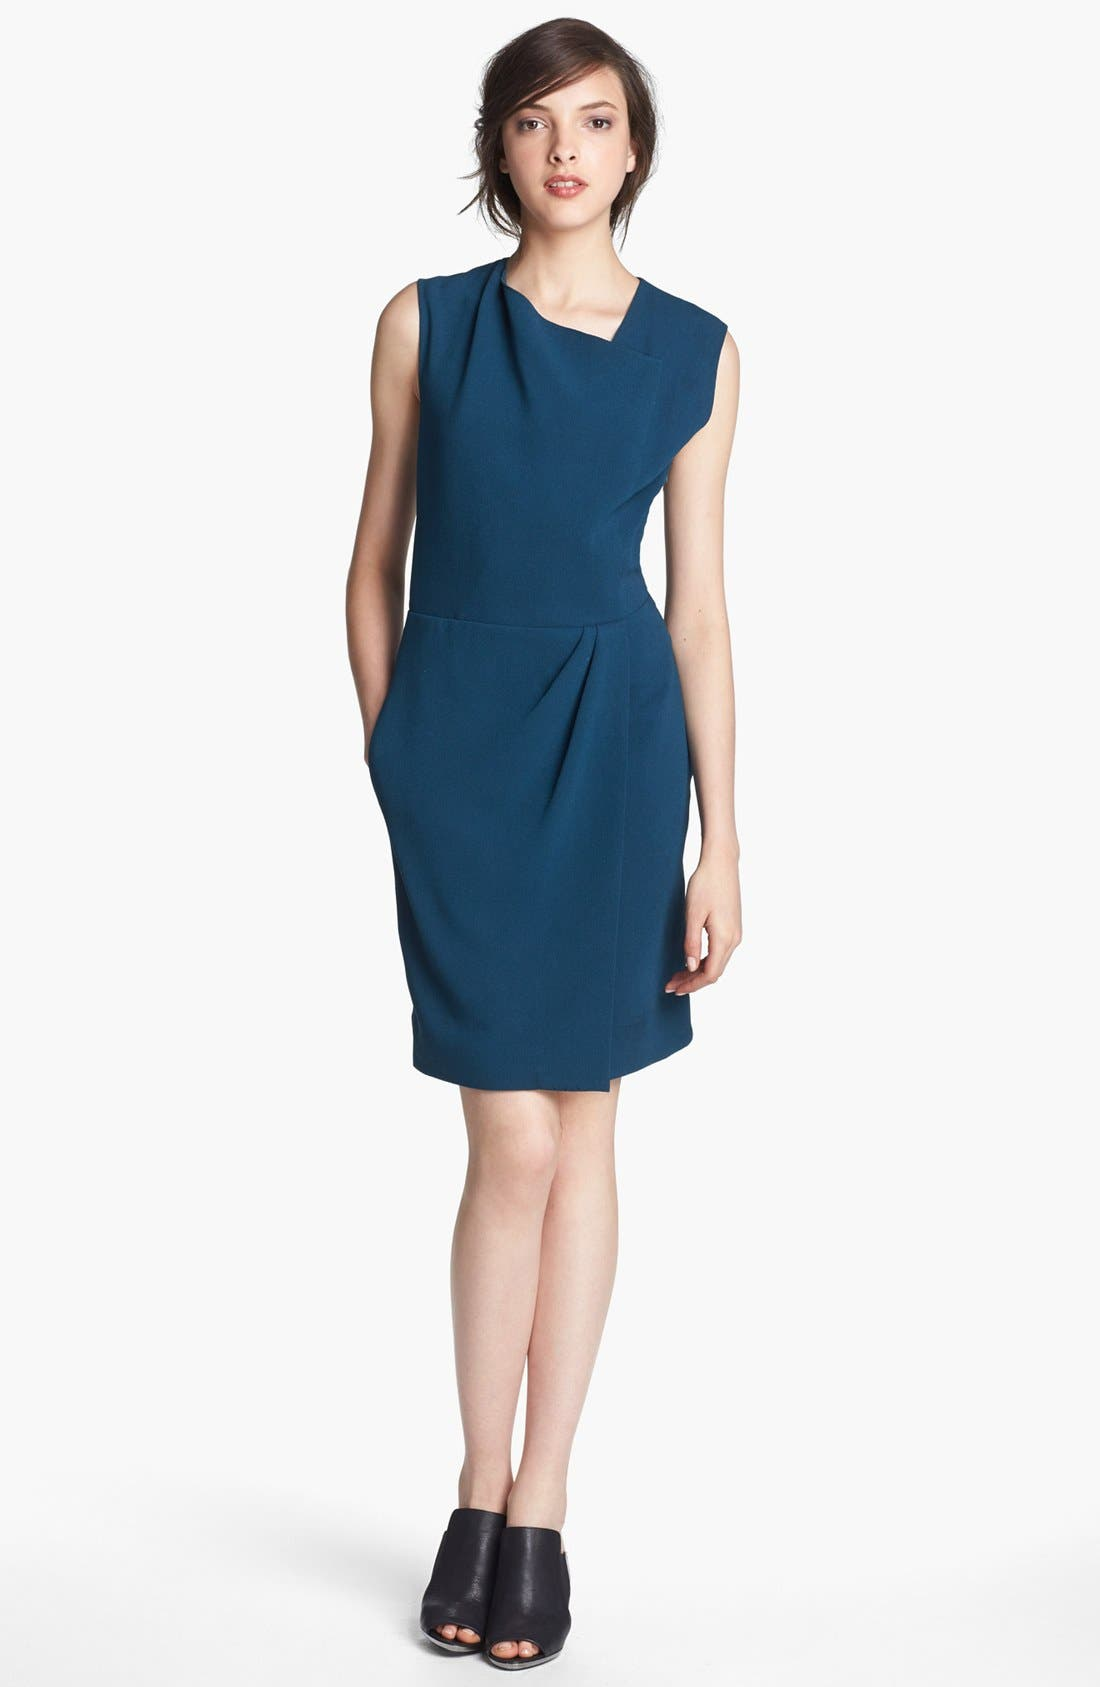 Alternate Image 1 Selected - 3.1 Phillip Lim Asymmetrical Drape Dress